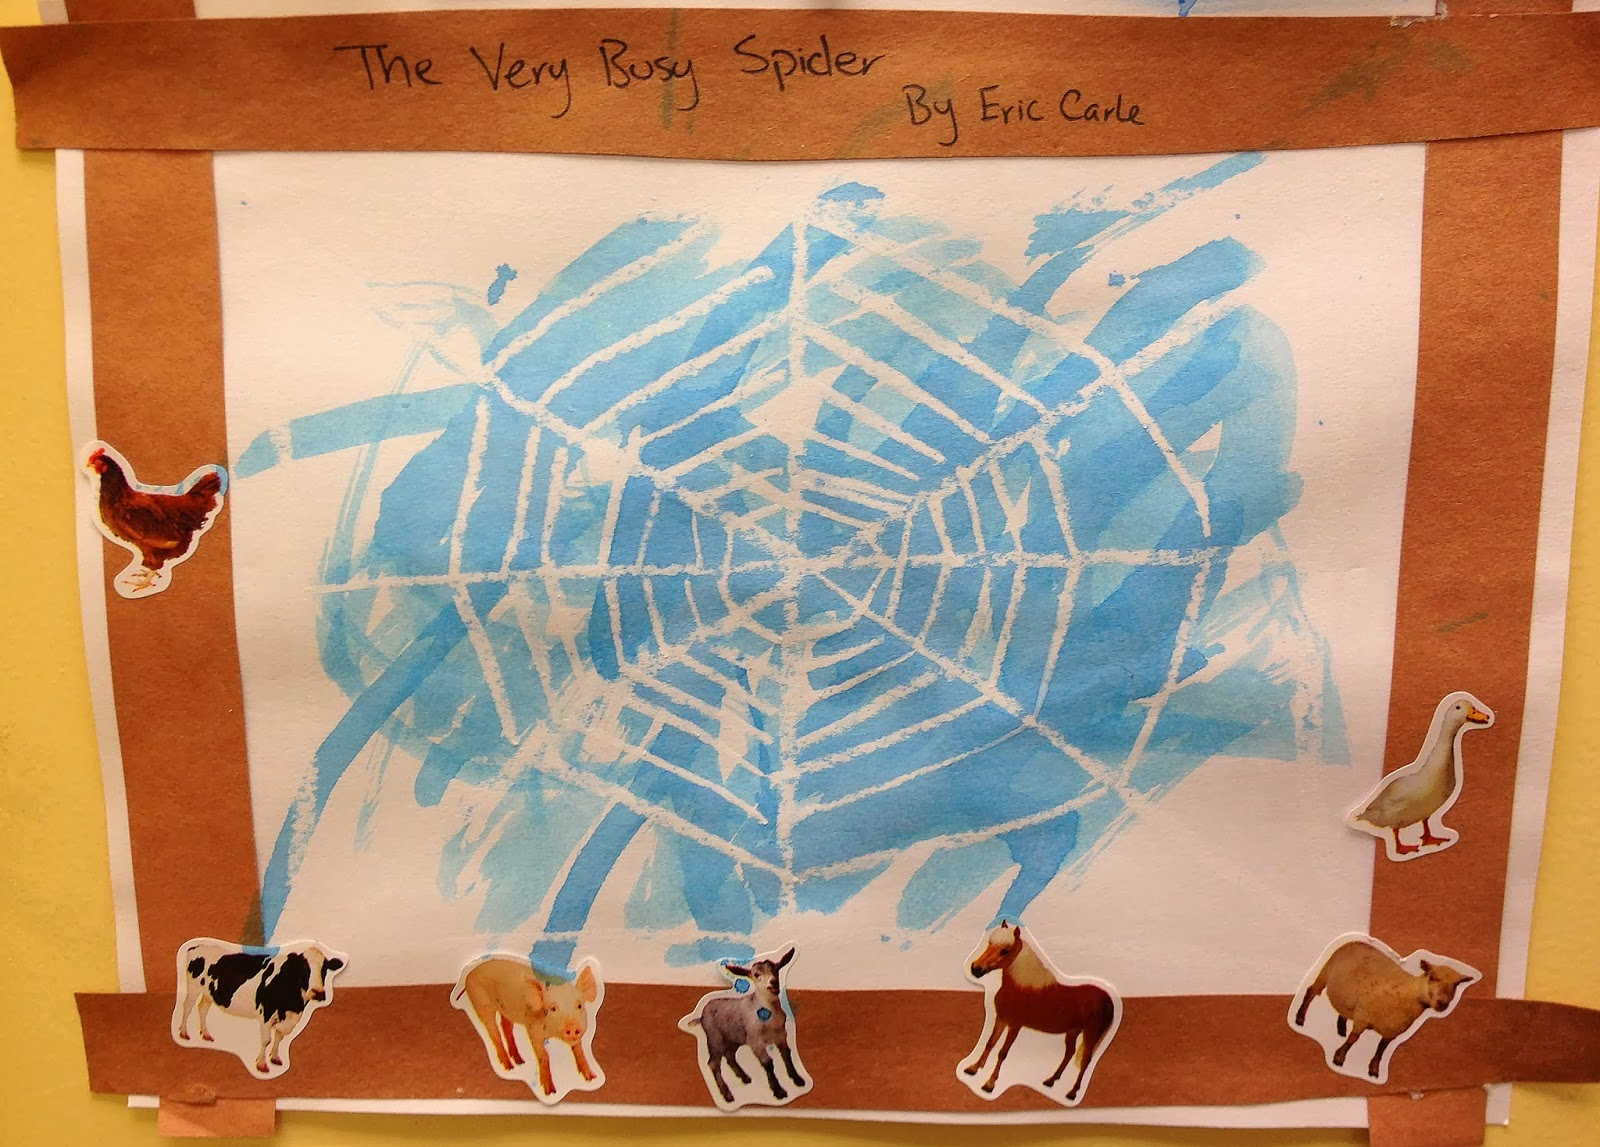 Preschool Ideas For 2 Year Olds The Very Busy Spider By